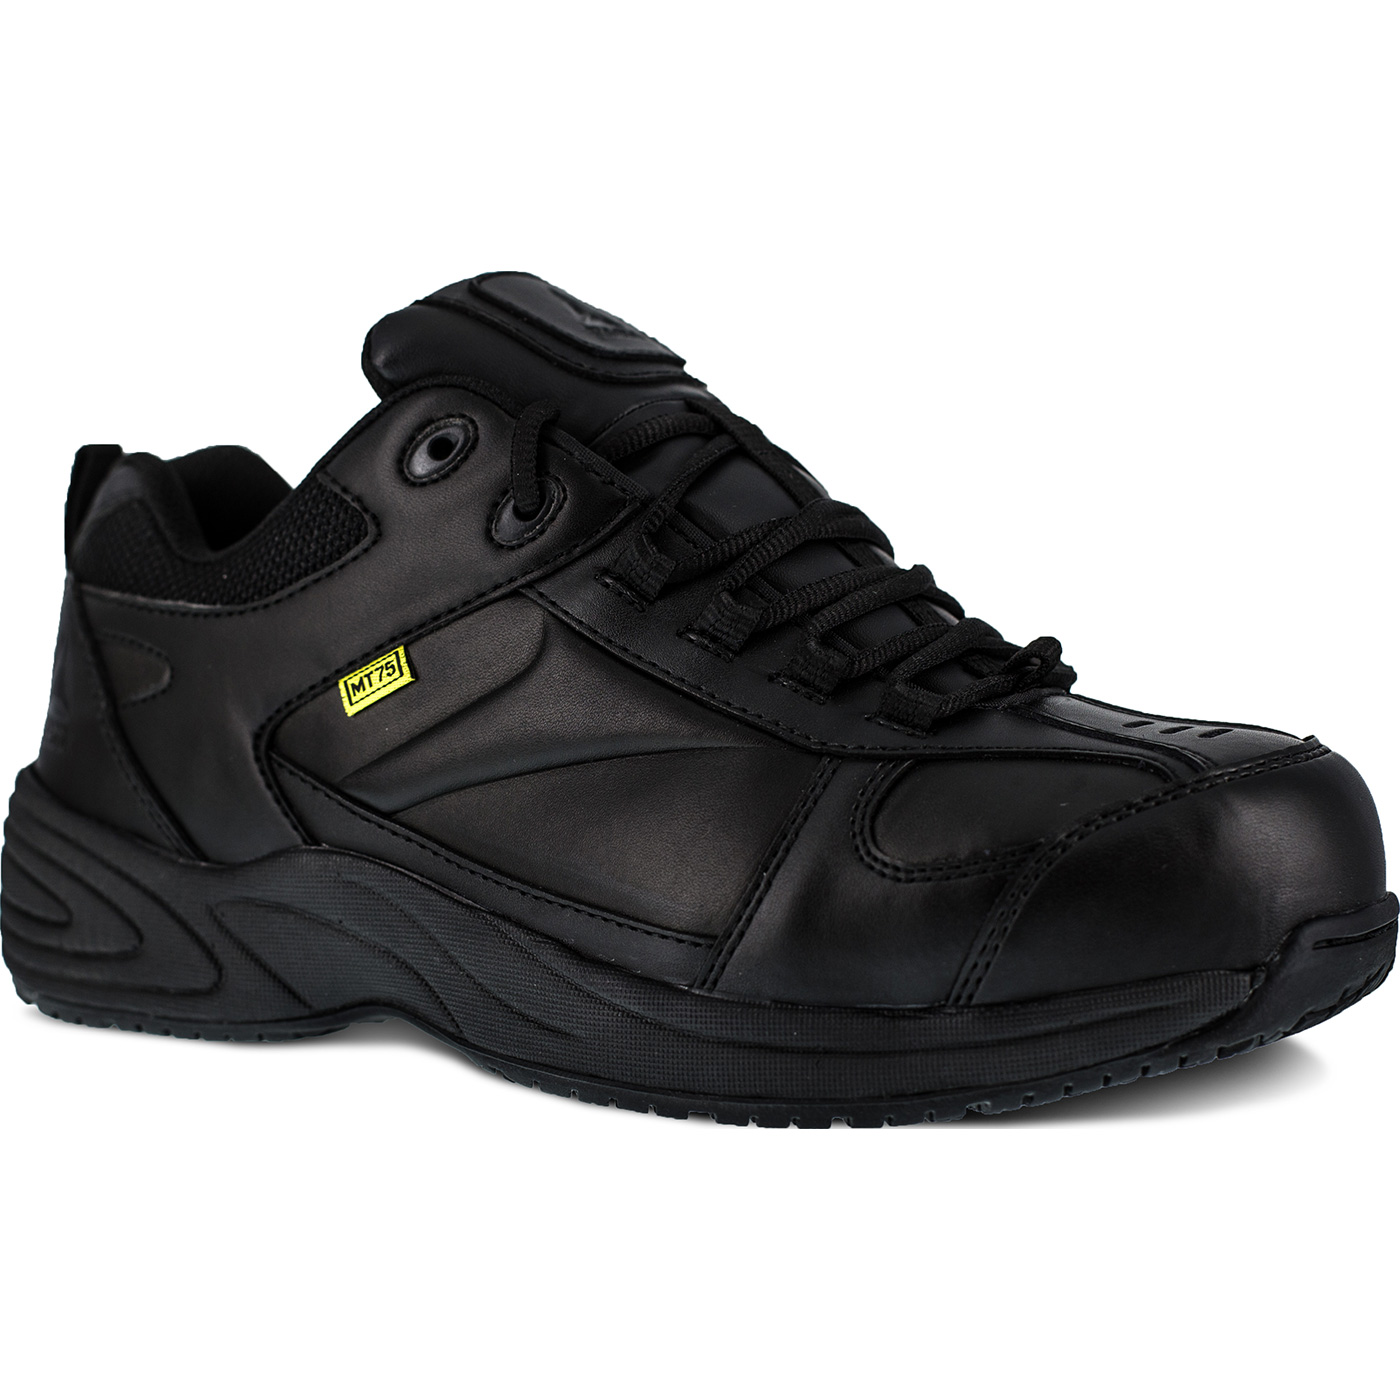 da3a9e3102e Reebok Centose Composite Toe Internal Met-Guard Work ShoeReebok Centose  Composite Toe Internal Met-Guard Work Shoe